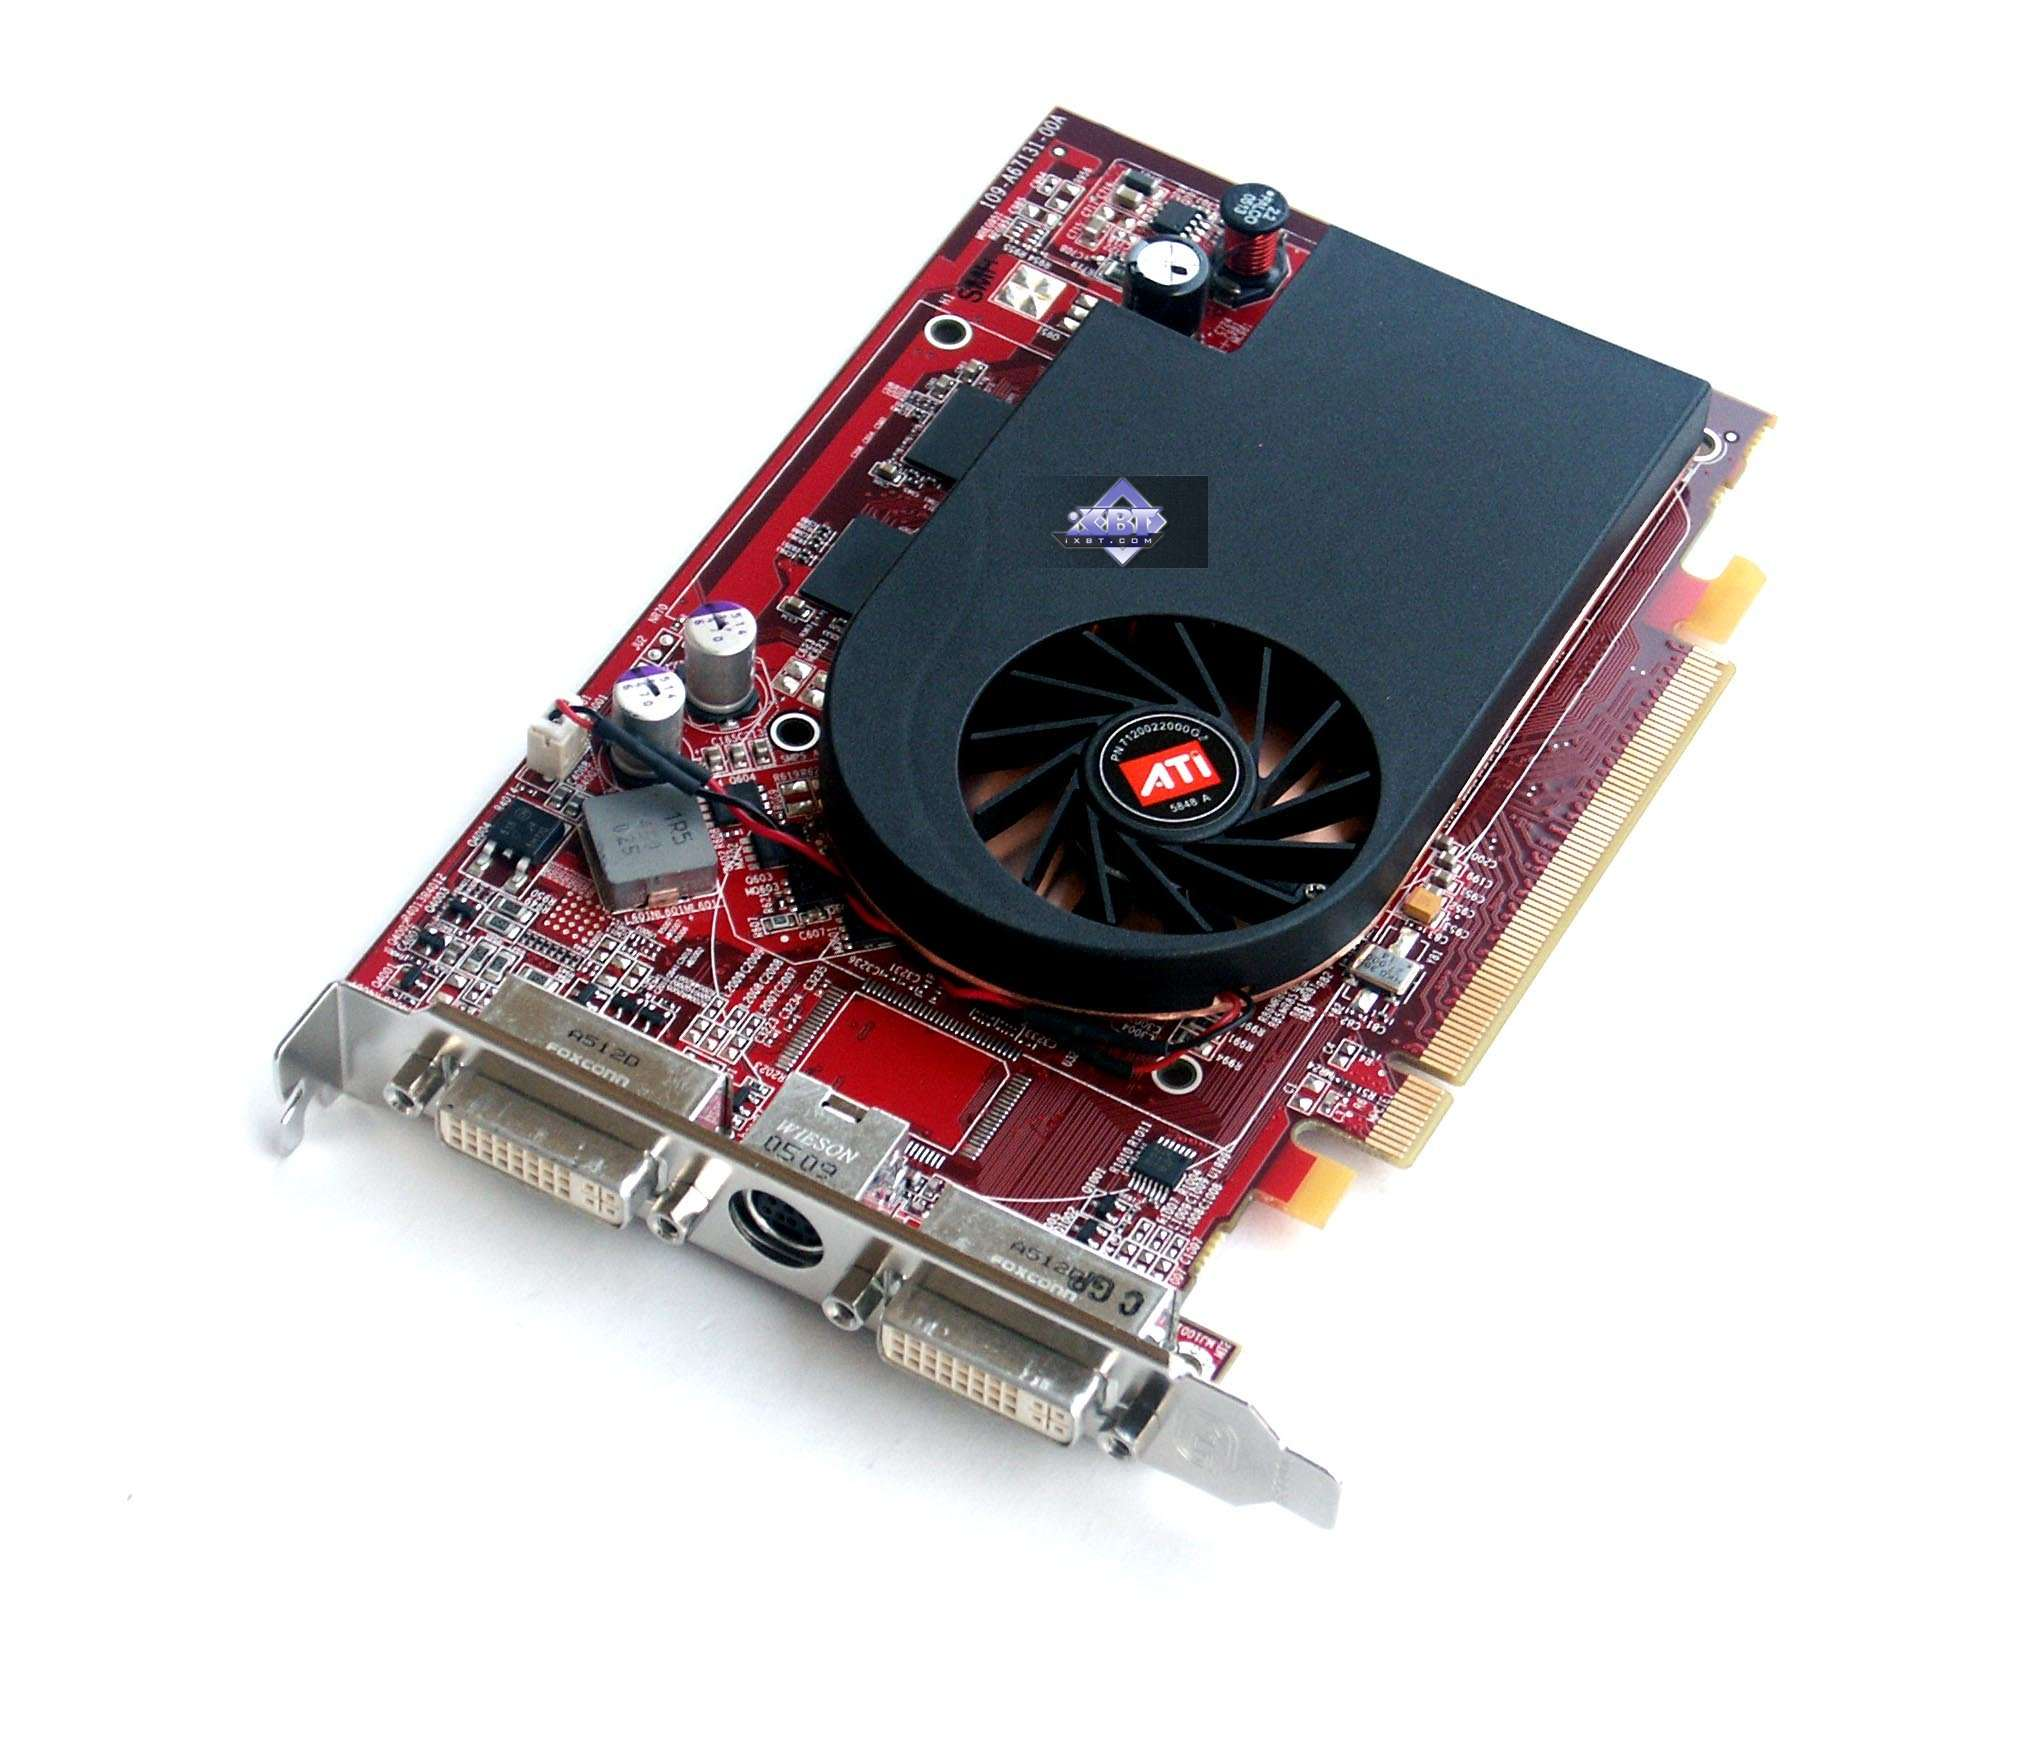 ATI RADEON X1600XT 256MB DRIVER WINDOWS